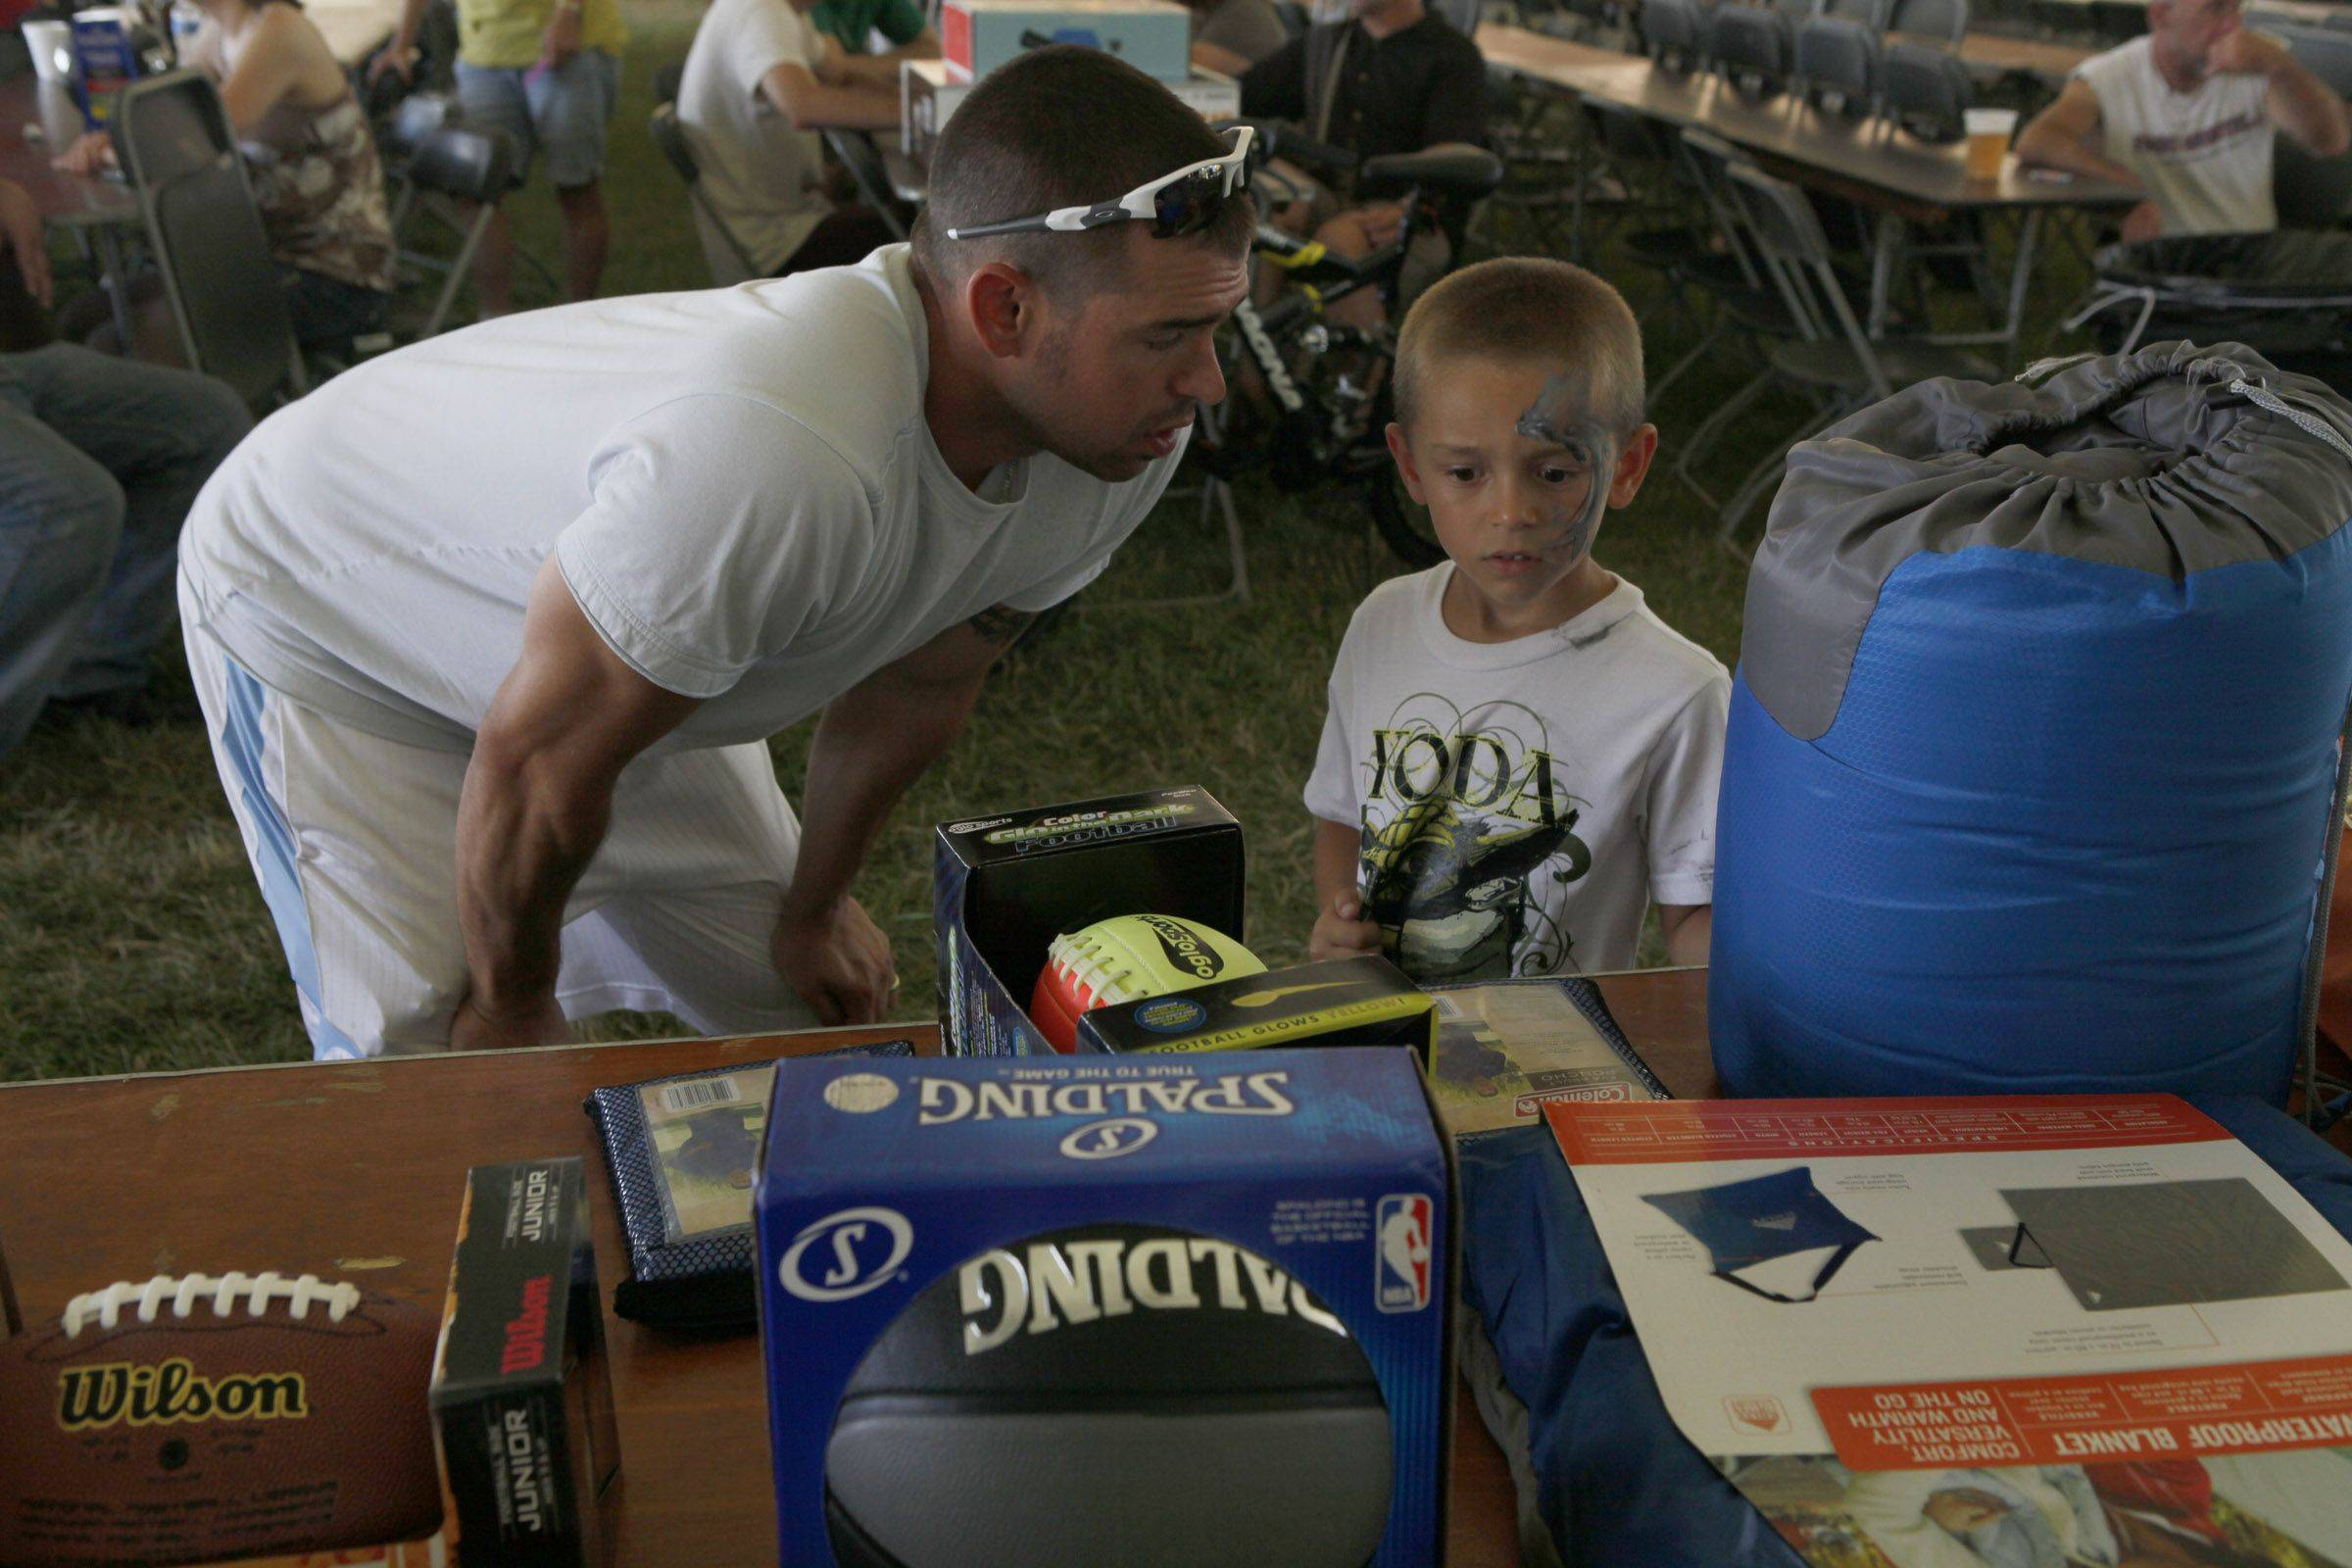 Brandon Caniglia and his father, Terry, pick out a prize in the Happy Acre Fishing Derby prize giveaway Sunday at Itasca Fest.